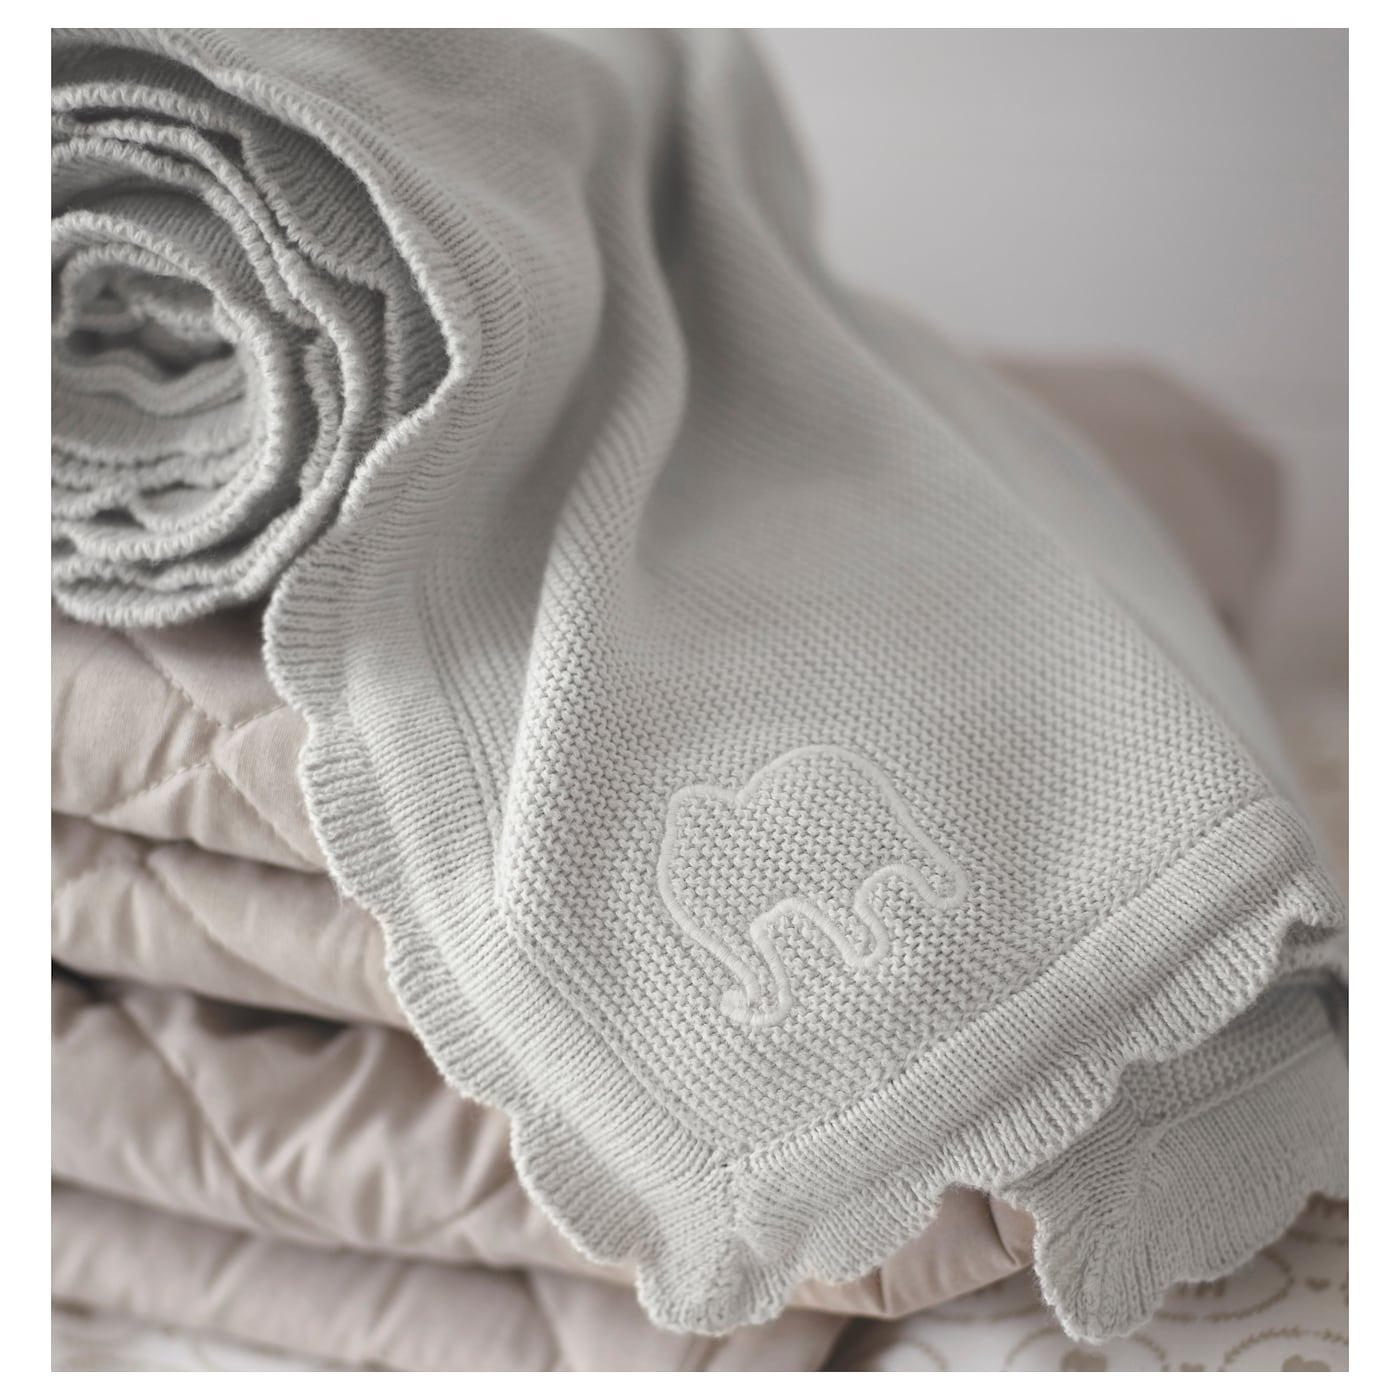 IKEA ÄLSKAD blanket Cotton, soft and nice against your child's skin. Soft and comfy to crawl into.